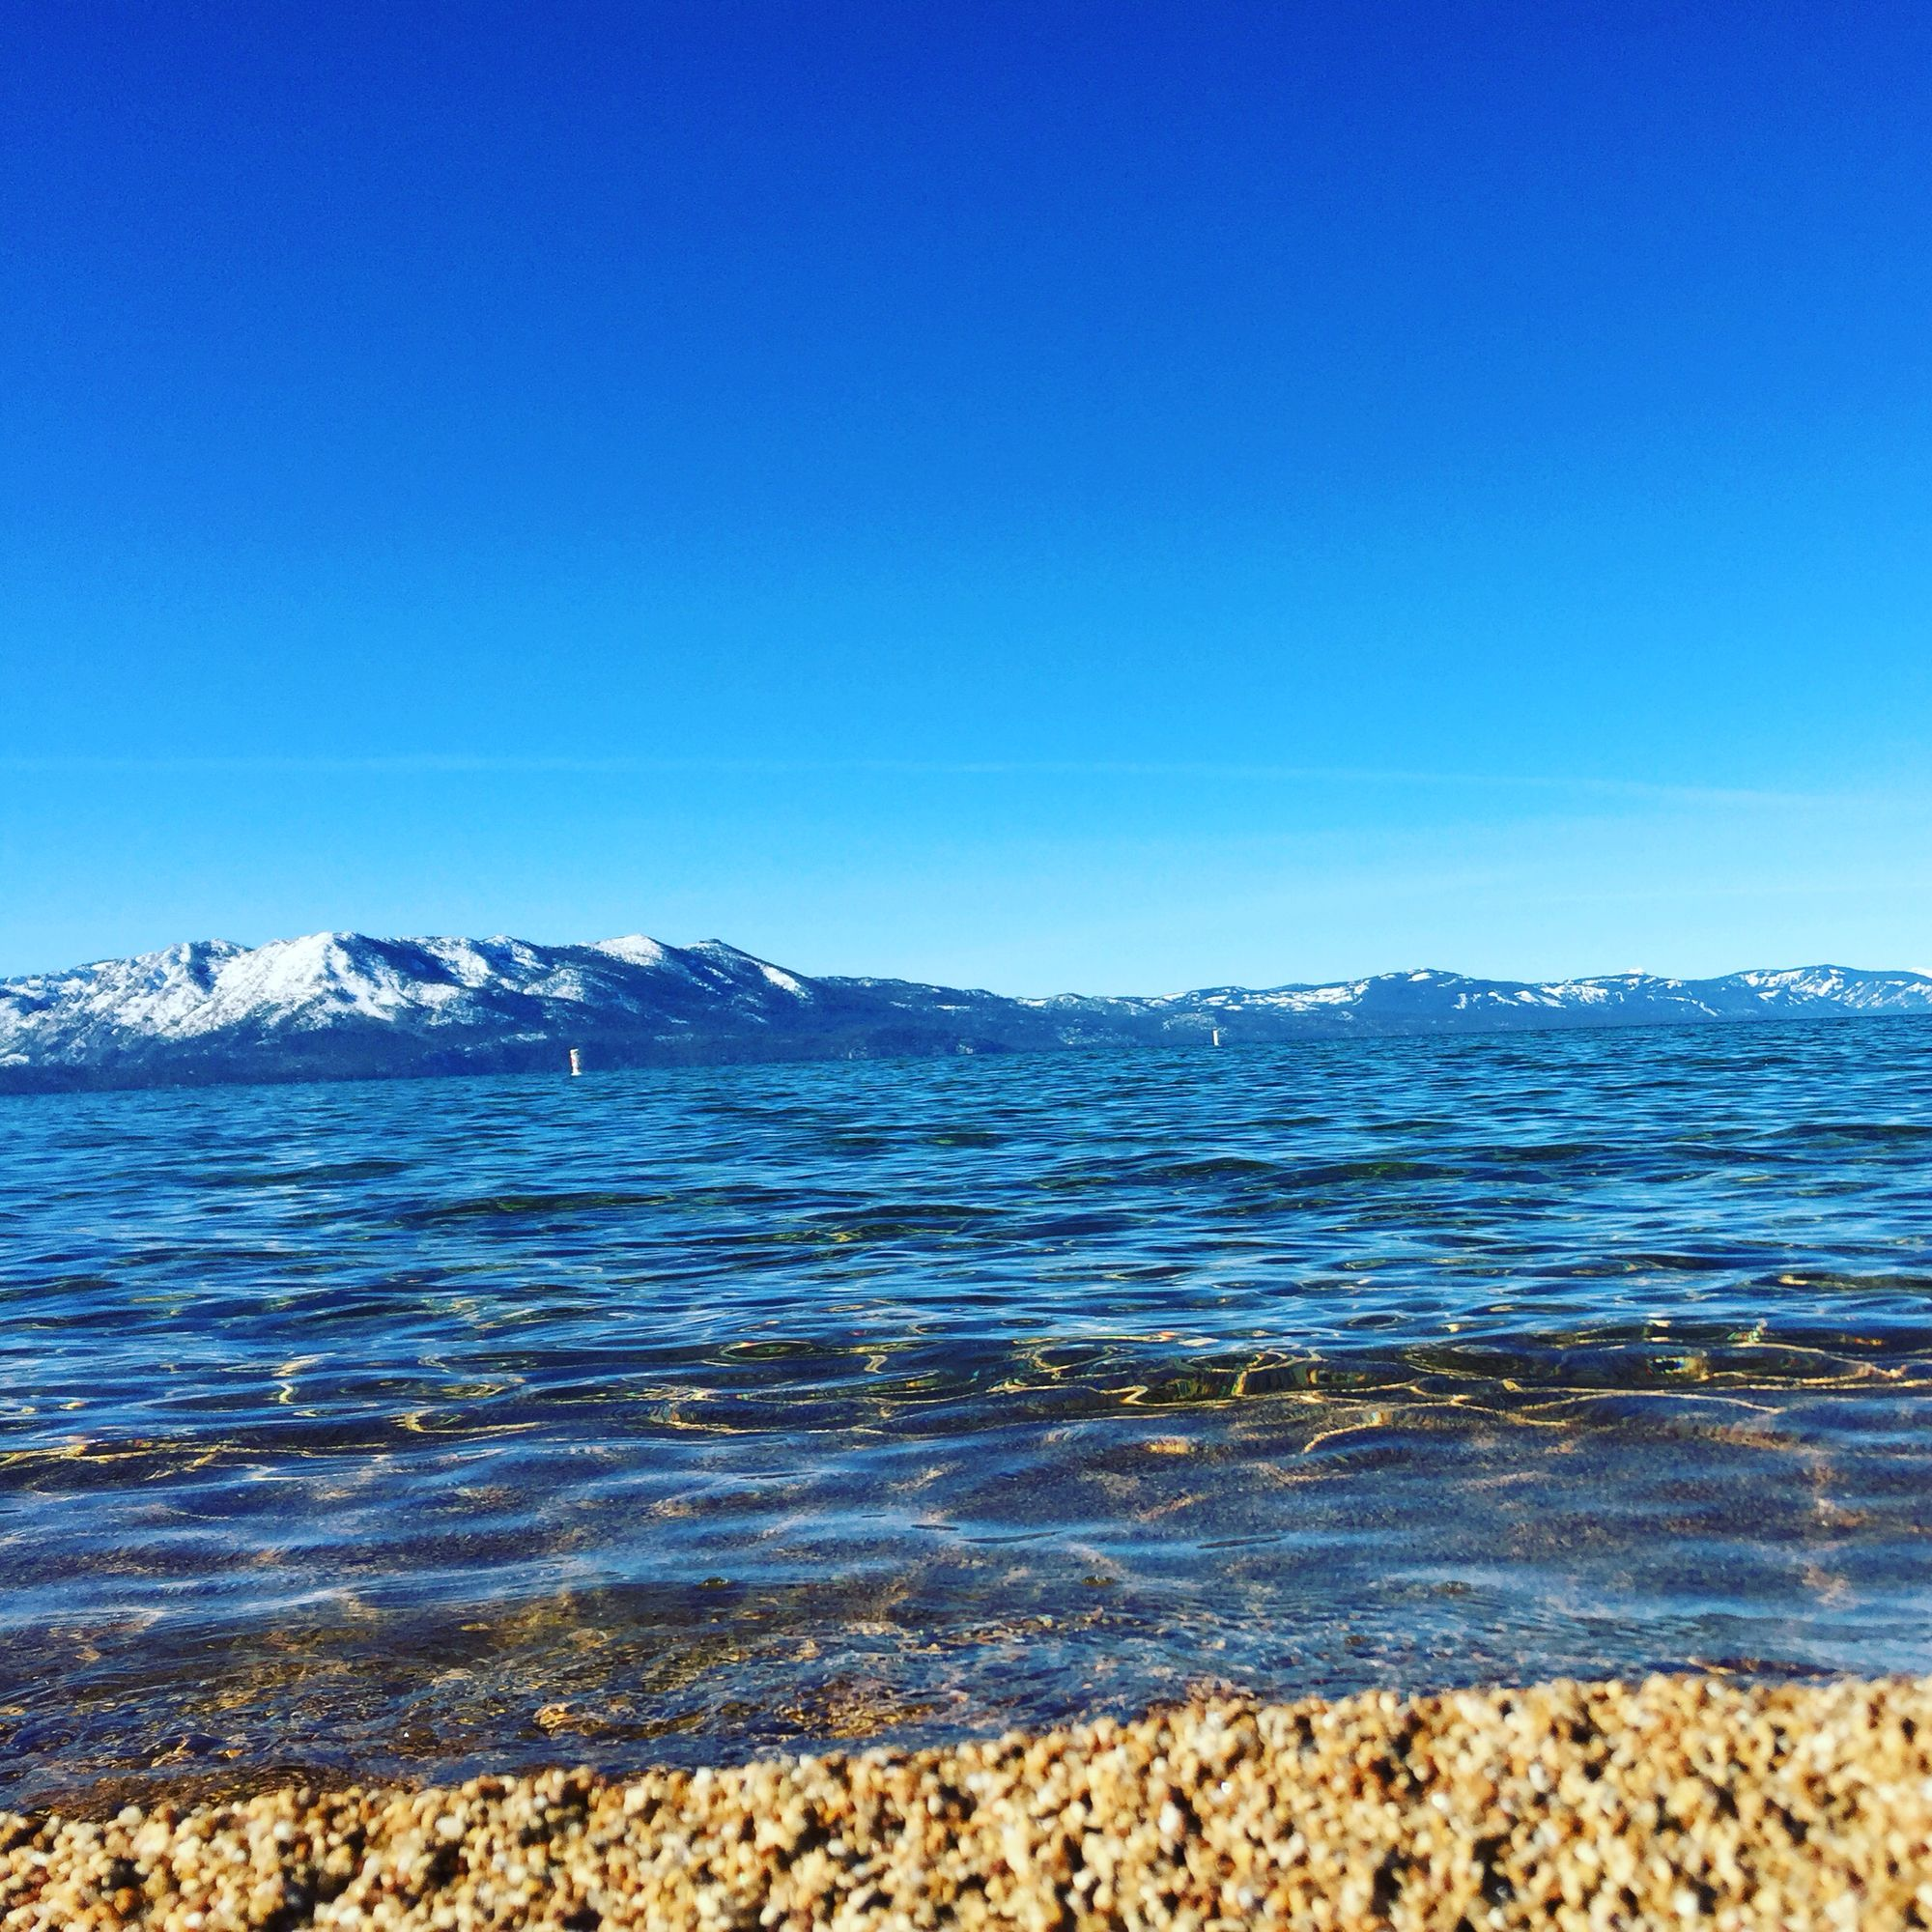 Lake tahoe sunset travel channel pinterest - Find This Pin And More On Travel Lake Tahoe